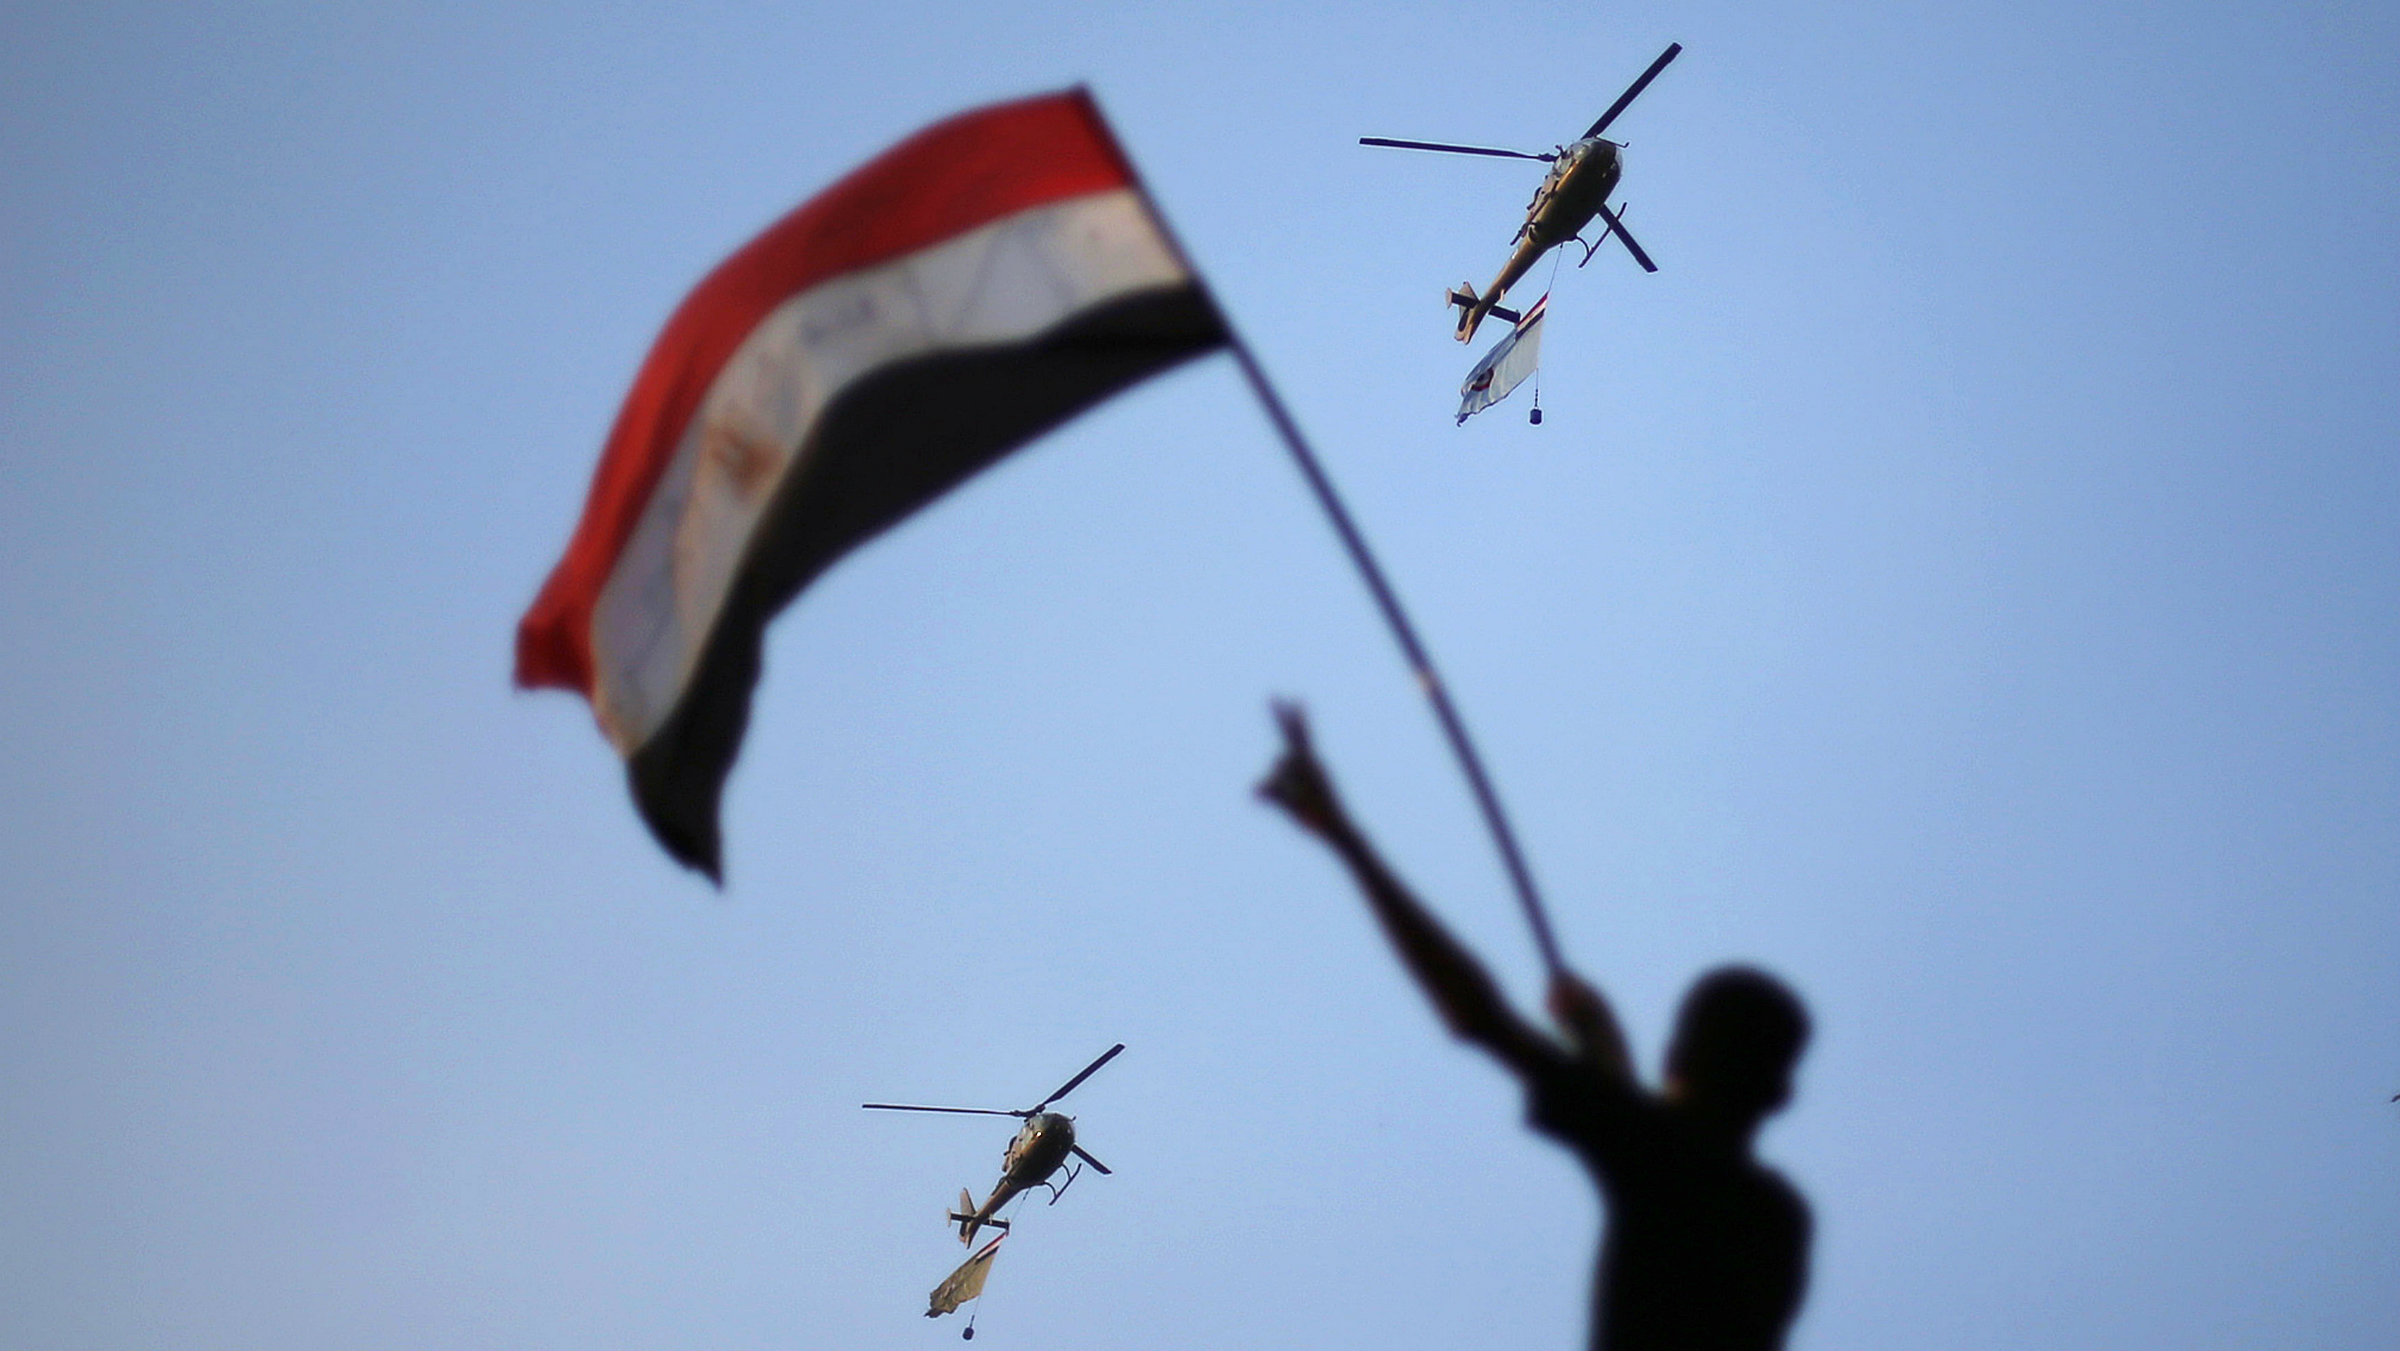 Morsi is caught between these two armies.